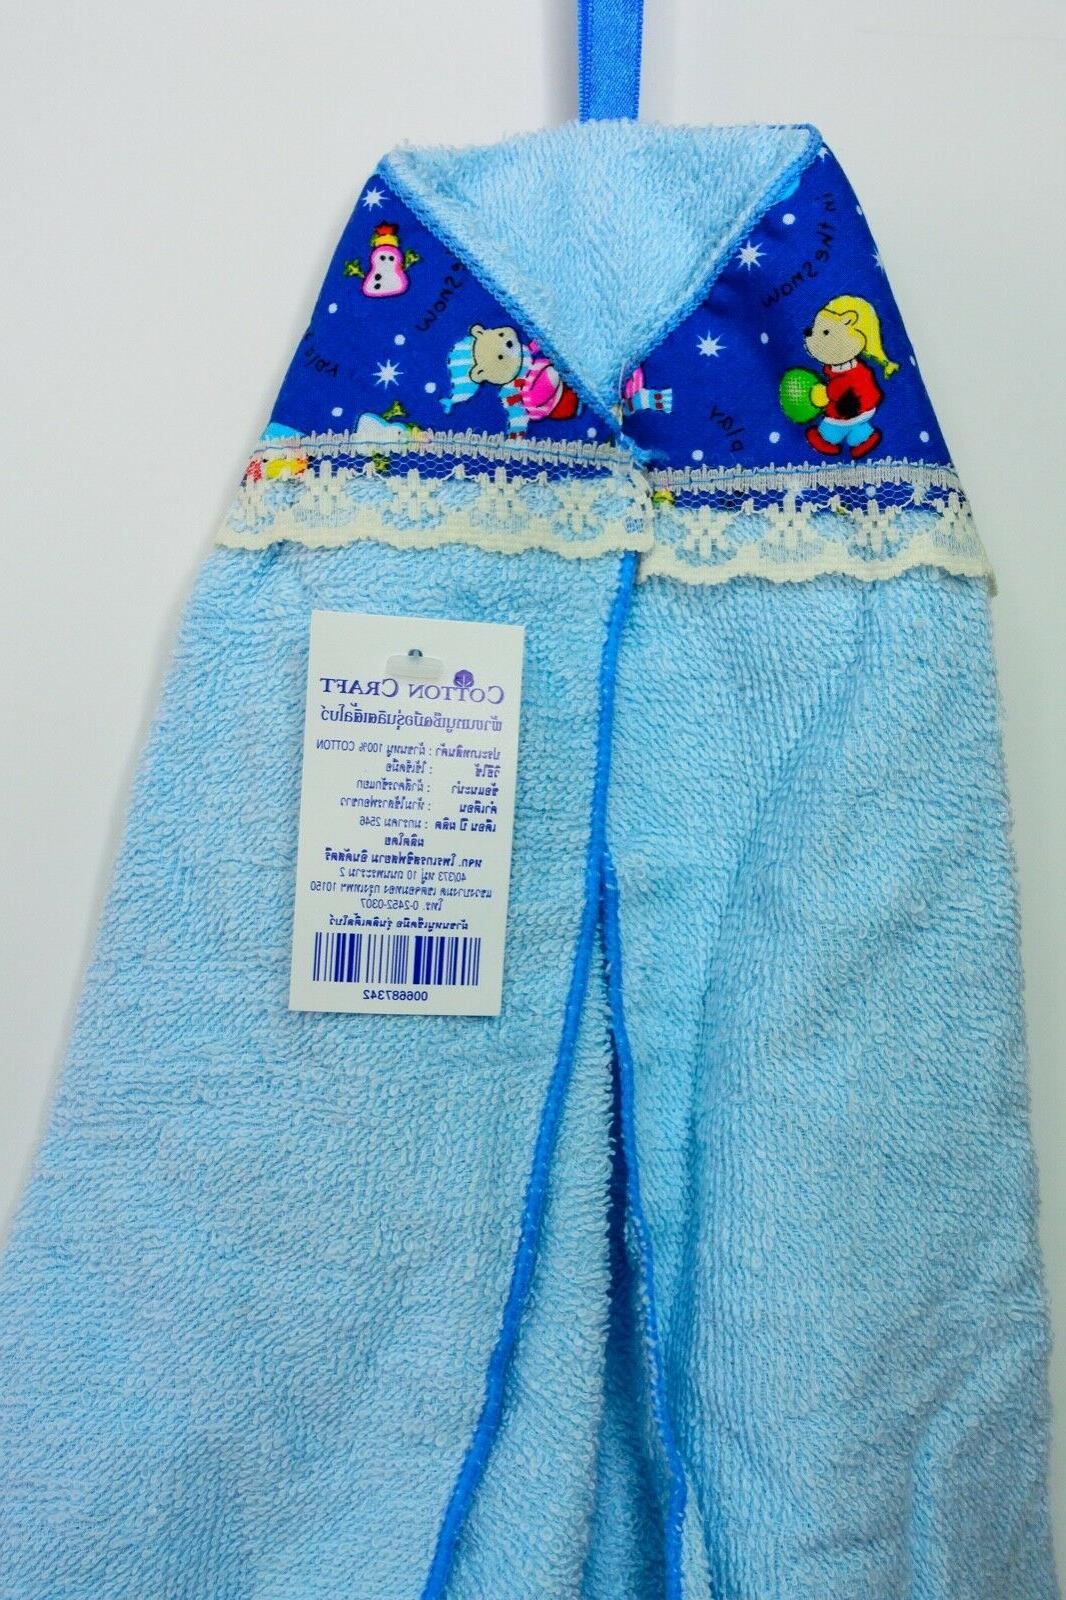 New Cotton Craft Towels 100% Cotton Thailand Pink & Imported